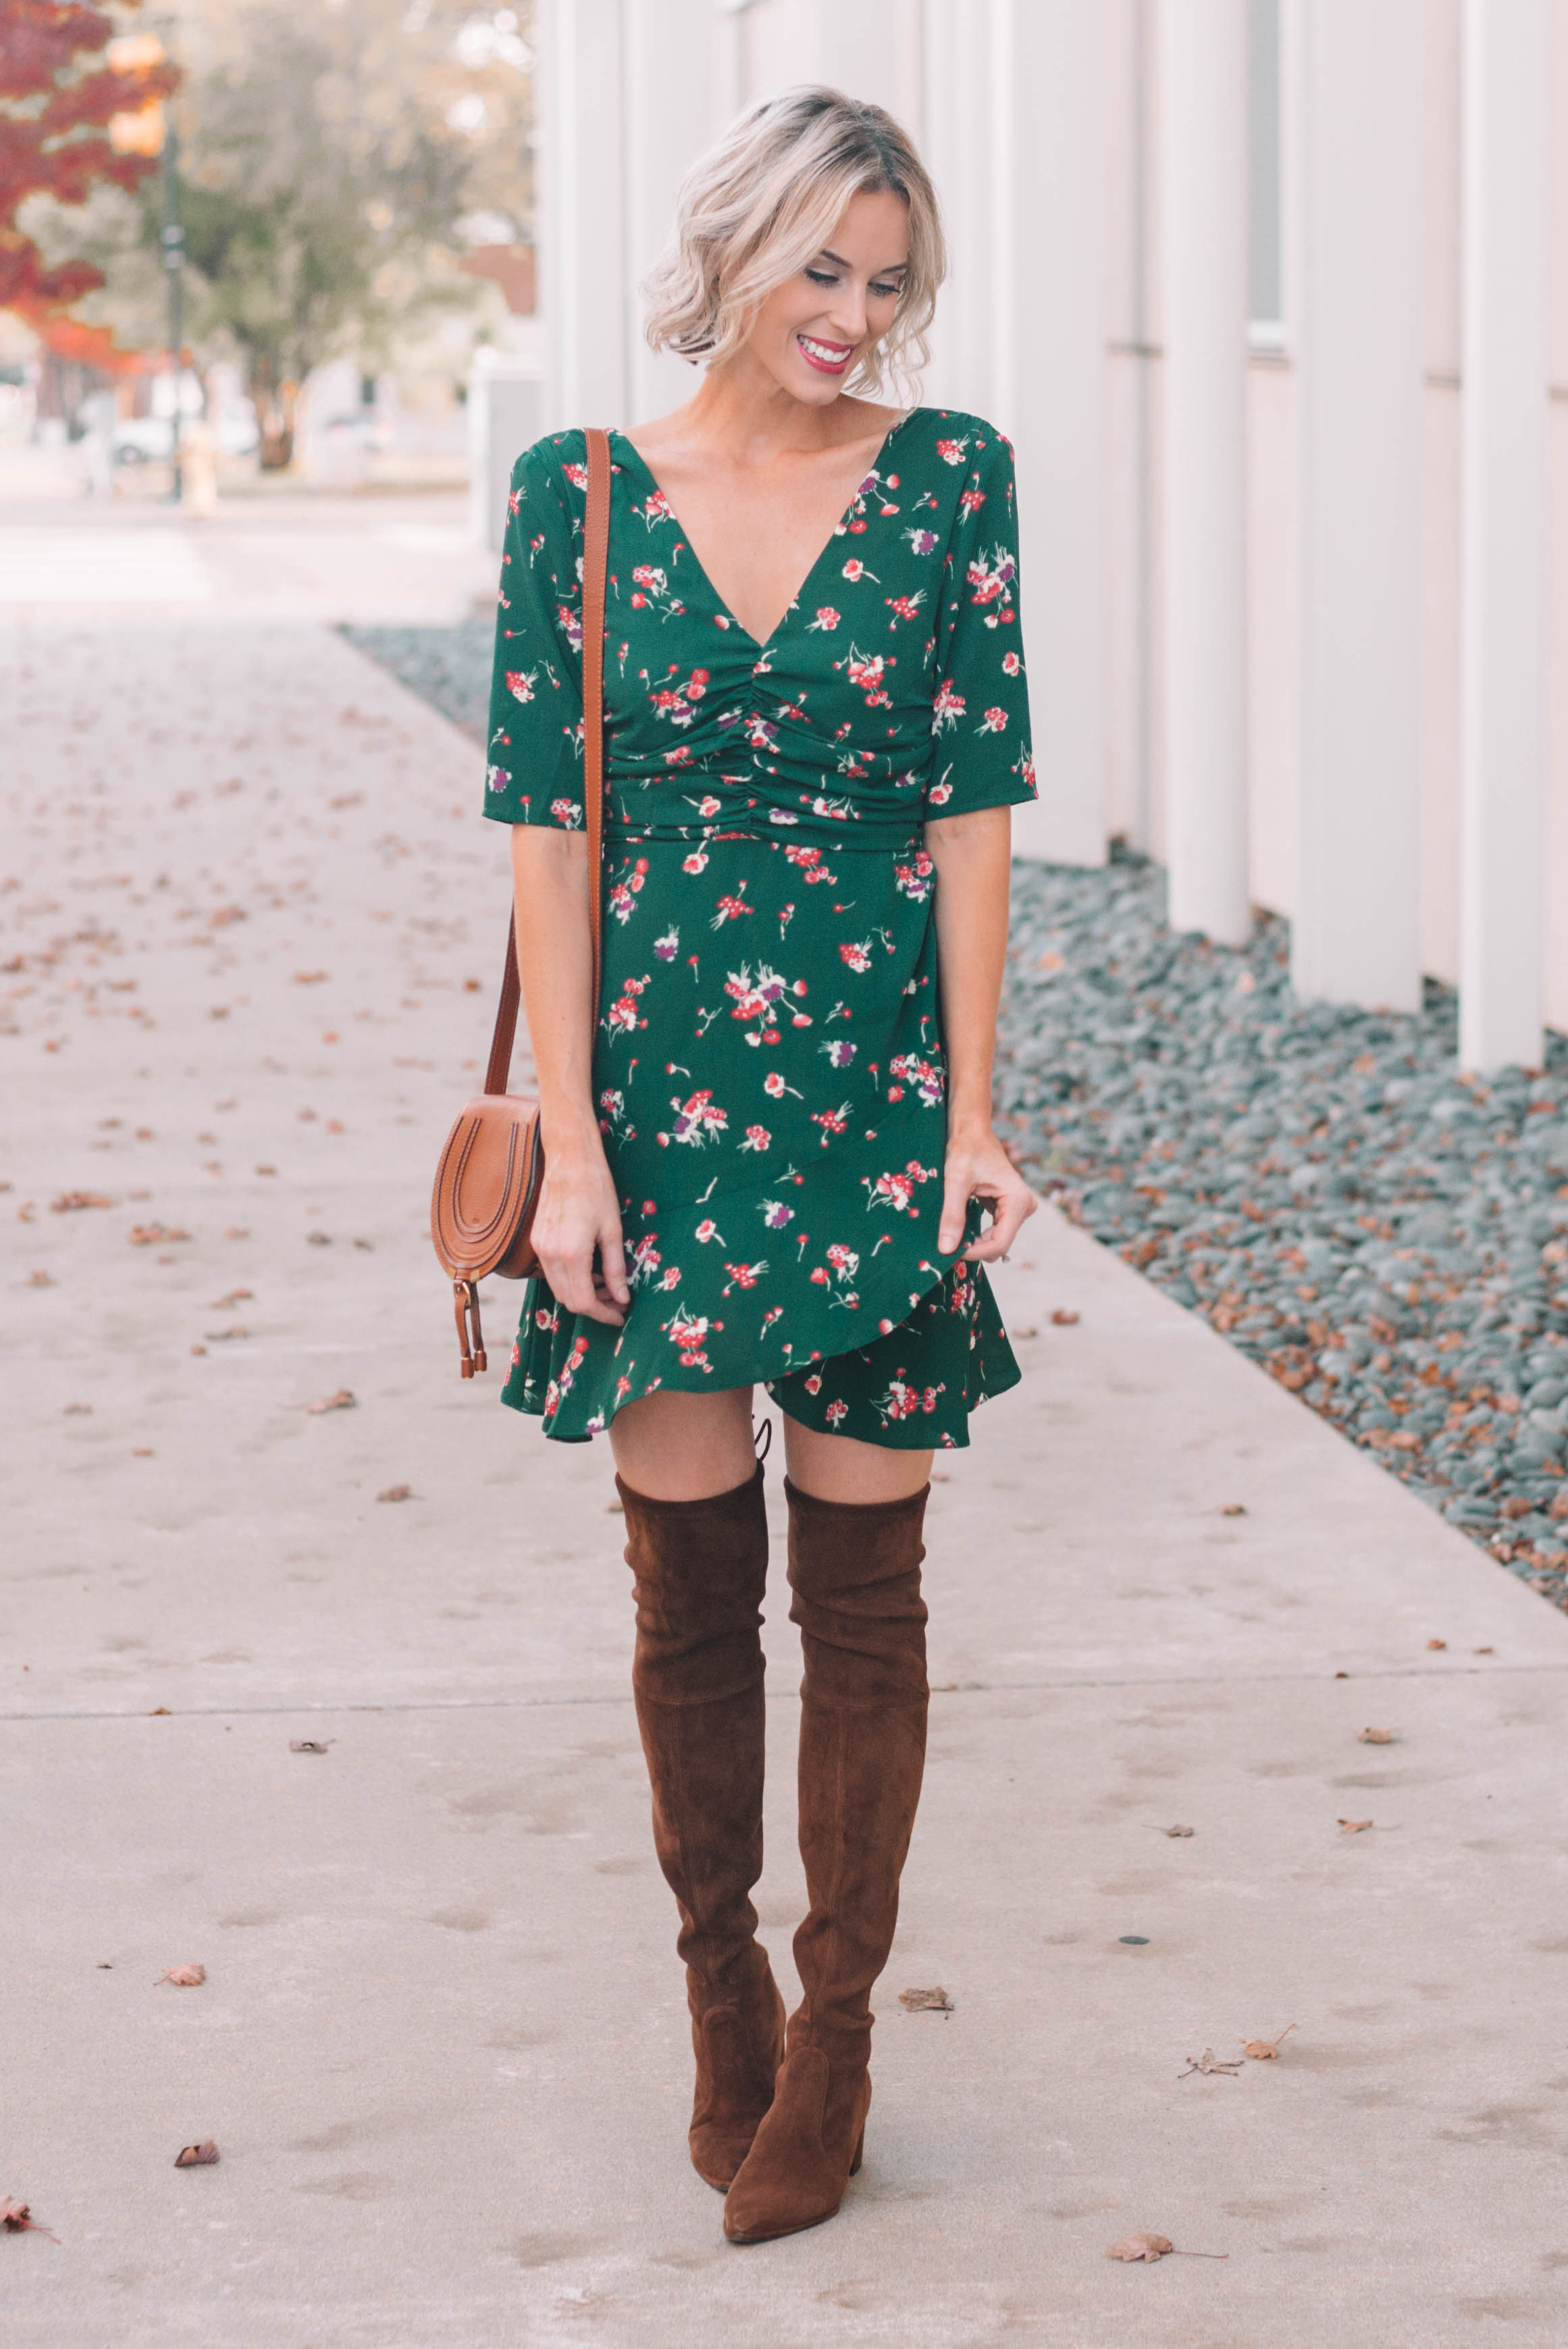 e69fccb5e9d You can also style a midi dress with over the knee boots in which case you  wouldn t worry about the hem. You just want one or the other – boots above  the ...